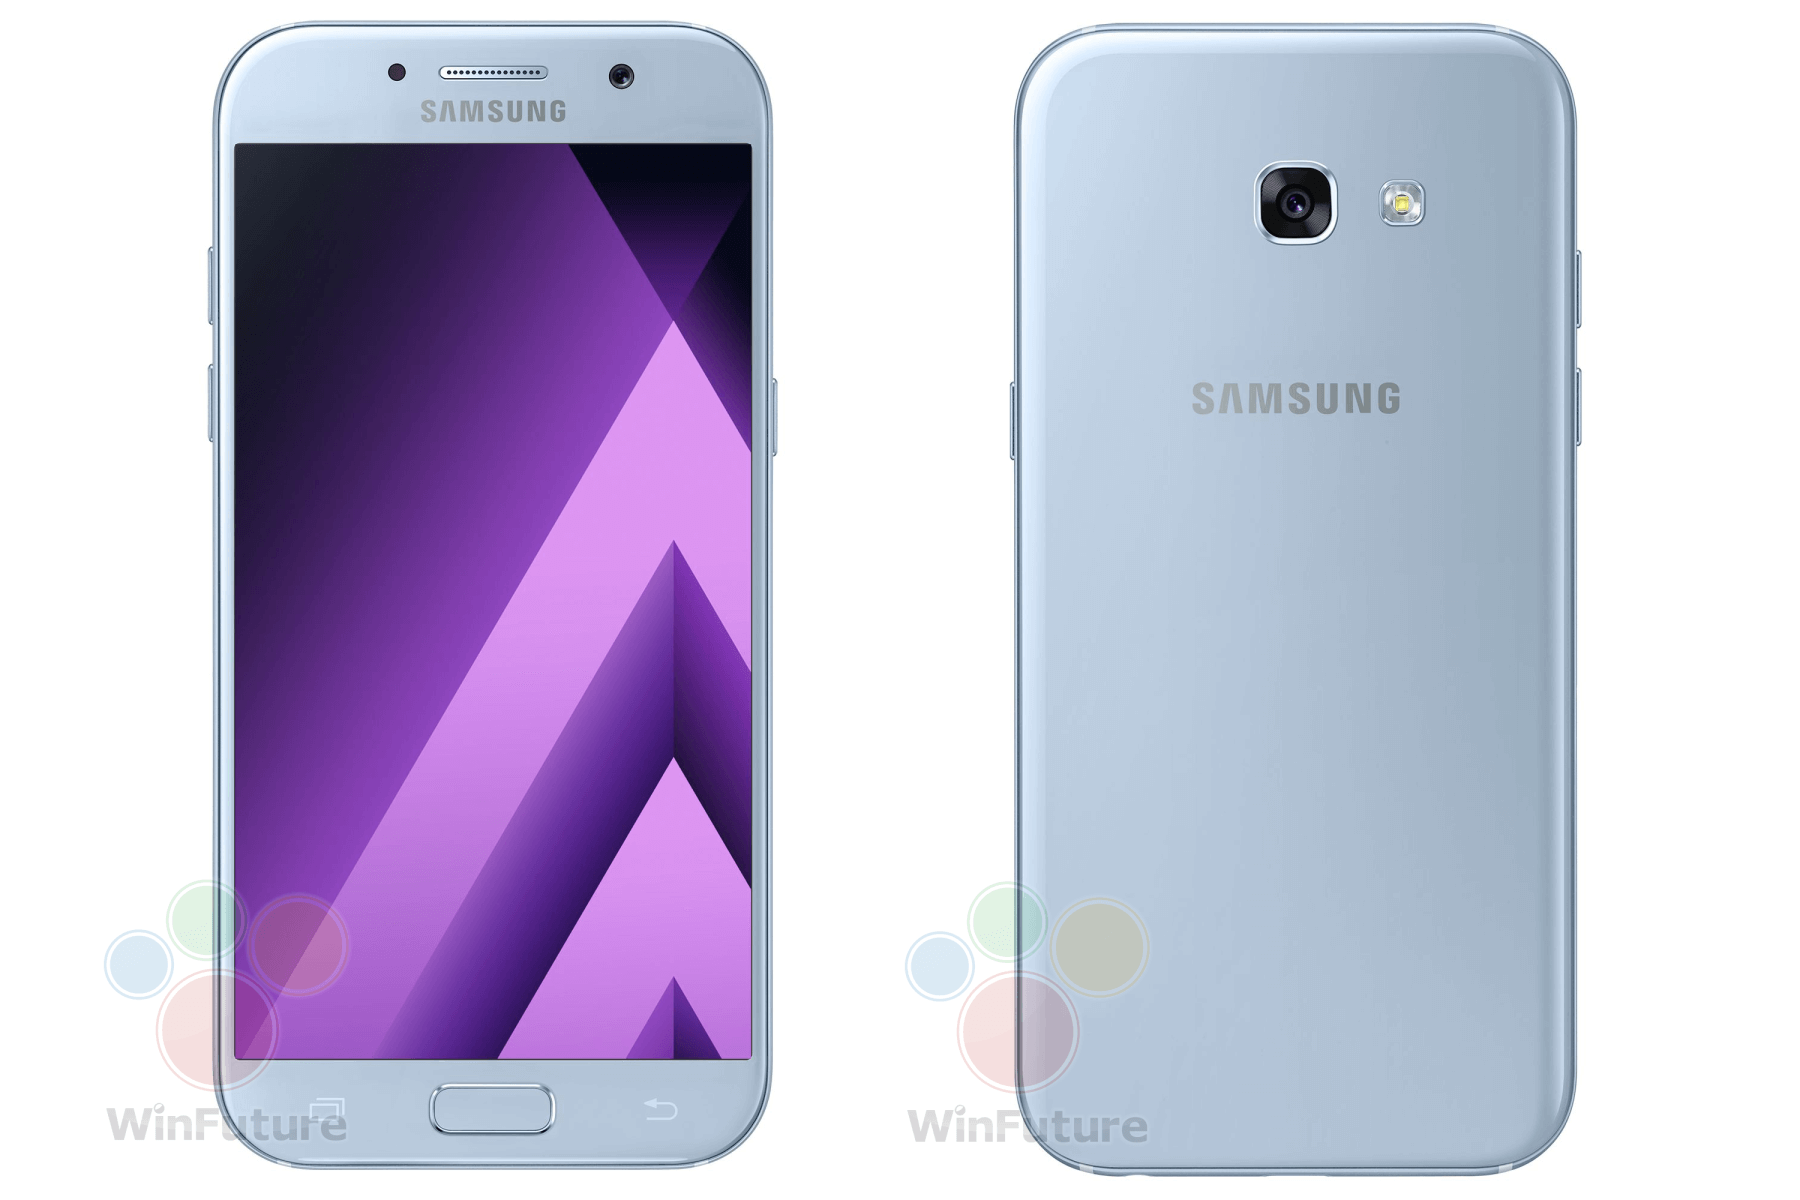 official photos of samsung galaxy a5 2017 and galaxy a3 2017 unveiled. Black Bedroom Furniture Sets. Home Design Ideas